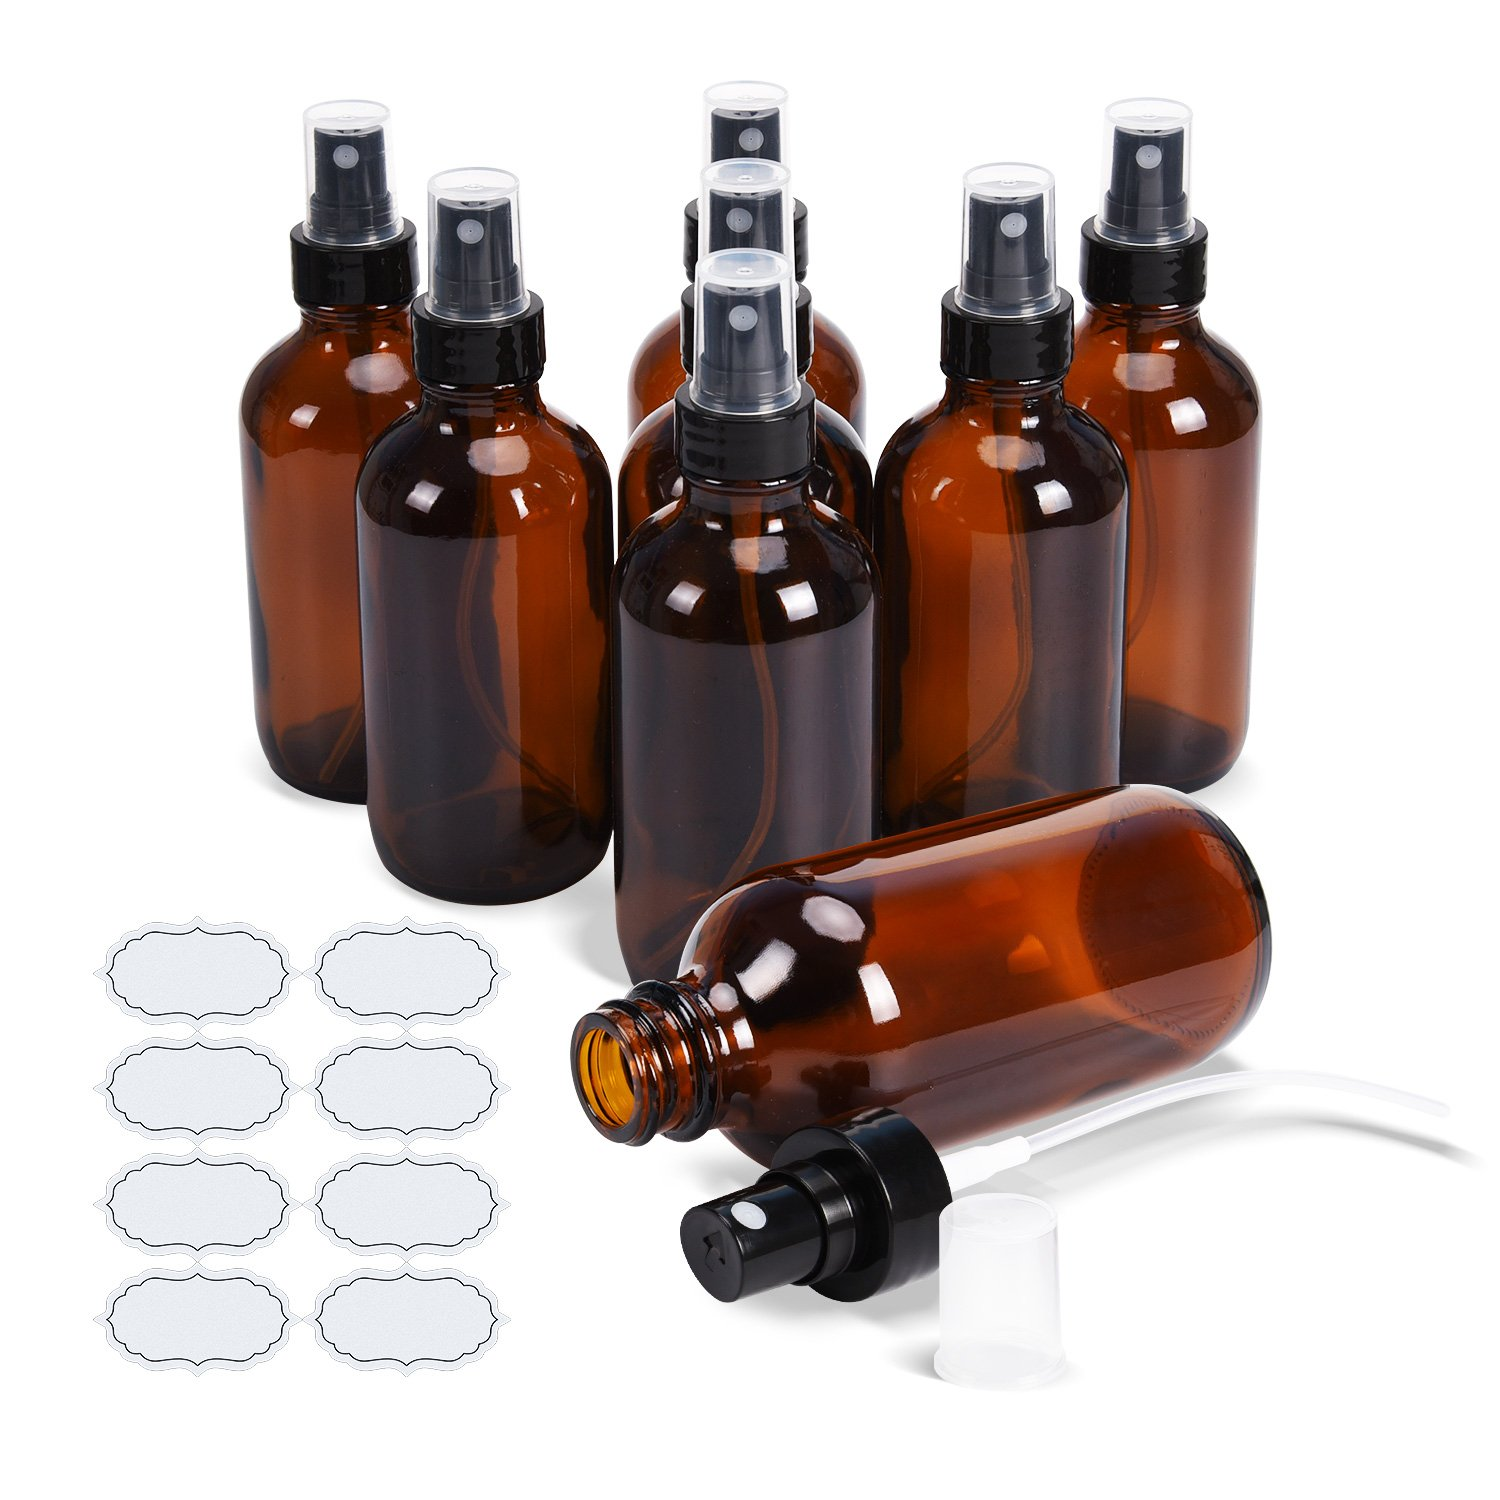 Fine Mist Sprayers 8 Pack 4 oz Amber Glass Bottles ULG Empty Spray Atomizer for Essential Oils Aromatherapy Cosmetic Sprays Including 8 Piece Waterproof DIY Labels